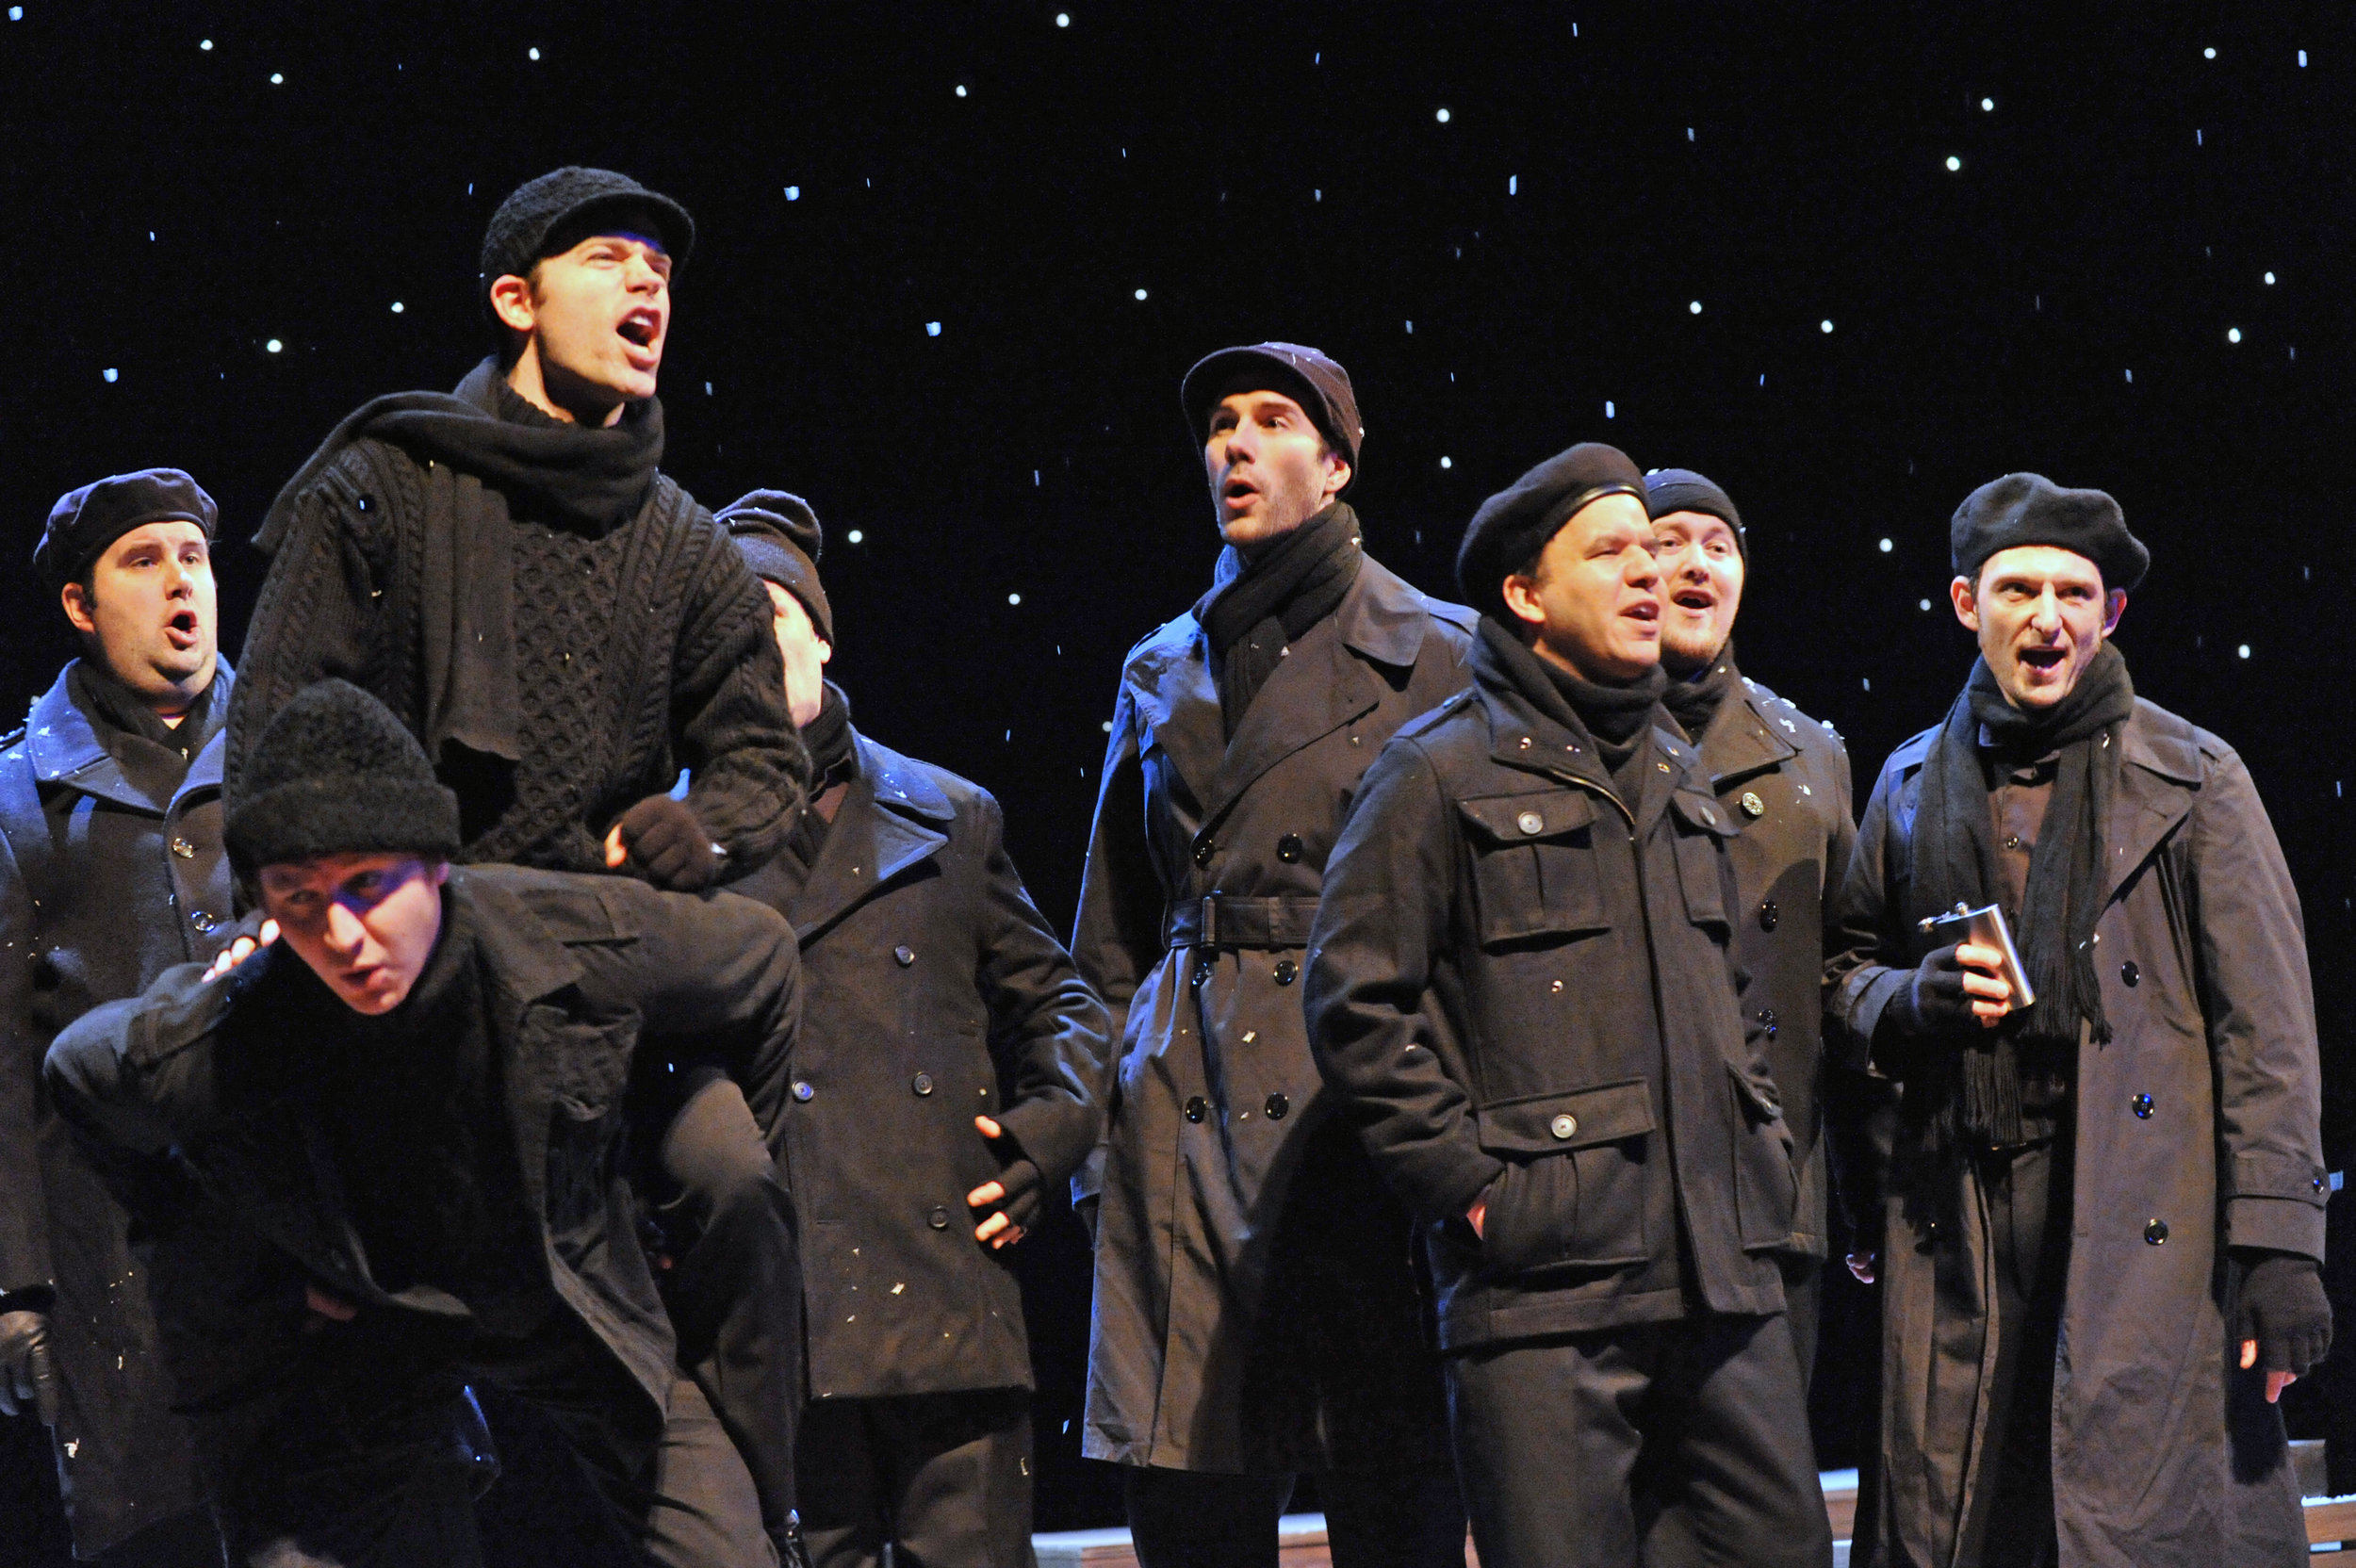 All is Calm: The Christmas Truce of 1914 - Written by Peter Rothstein, vocal arrangements by Erick Lichte and Timothy C. Takach